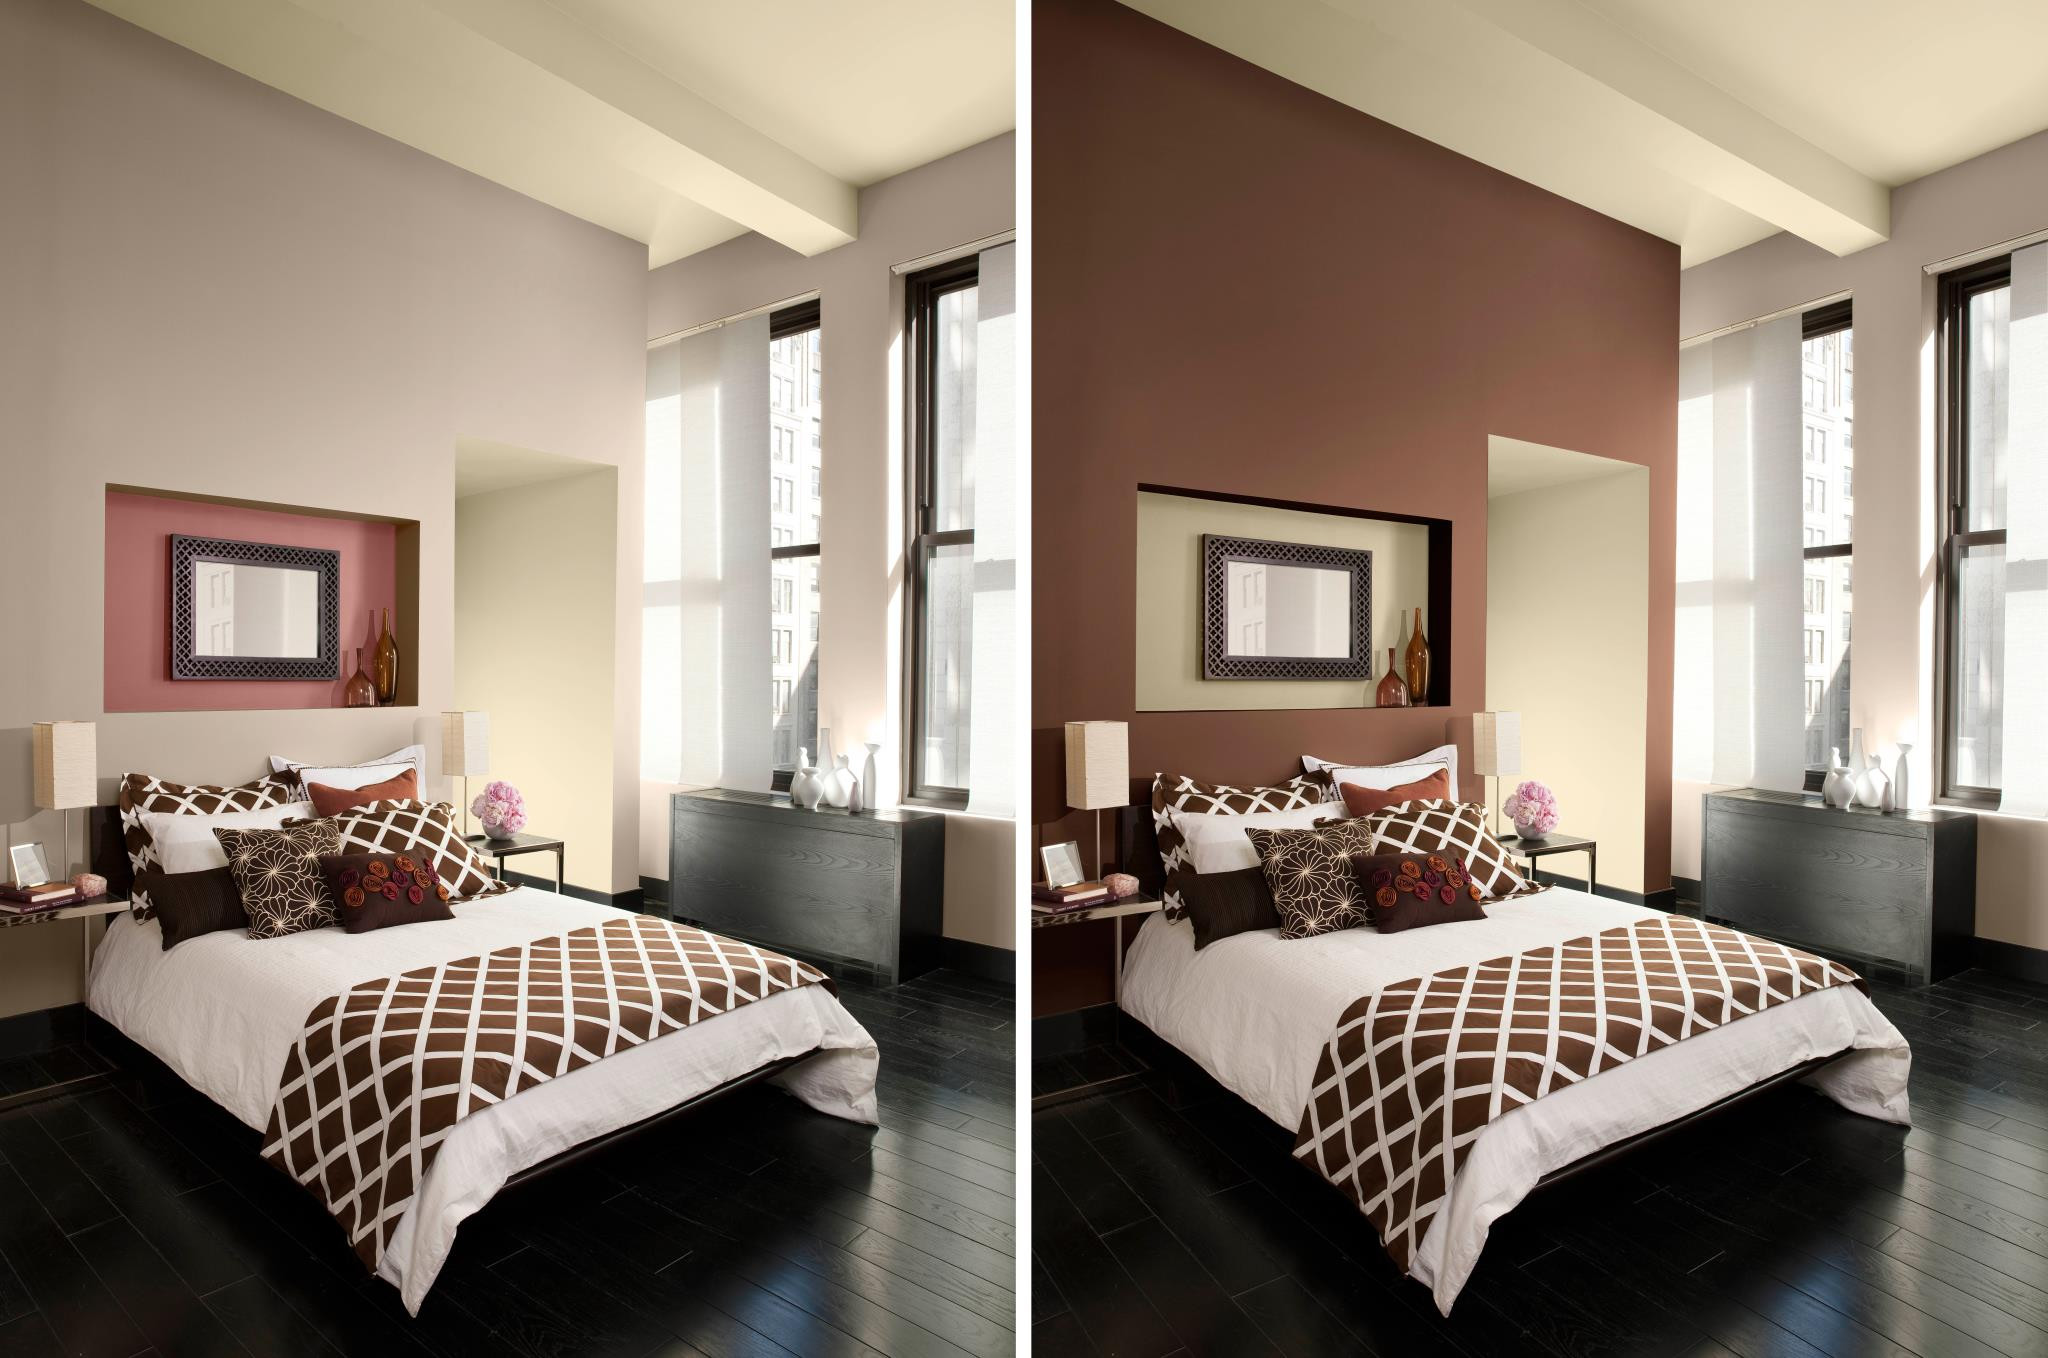 Best ideas about Painting Accent Walls . Save or Pin how to paint an accent wall Now.